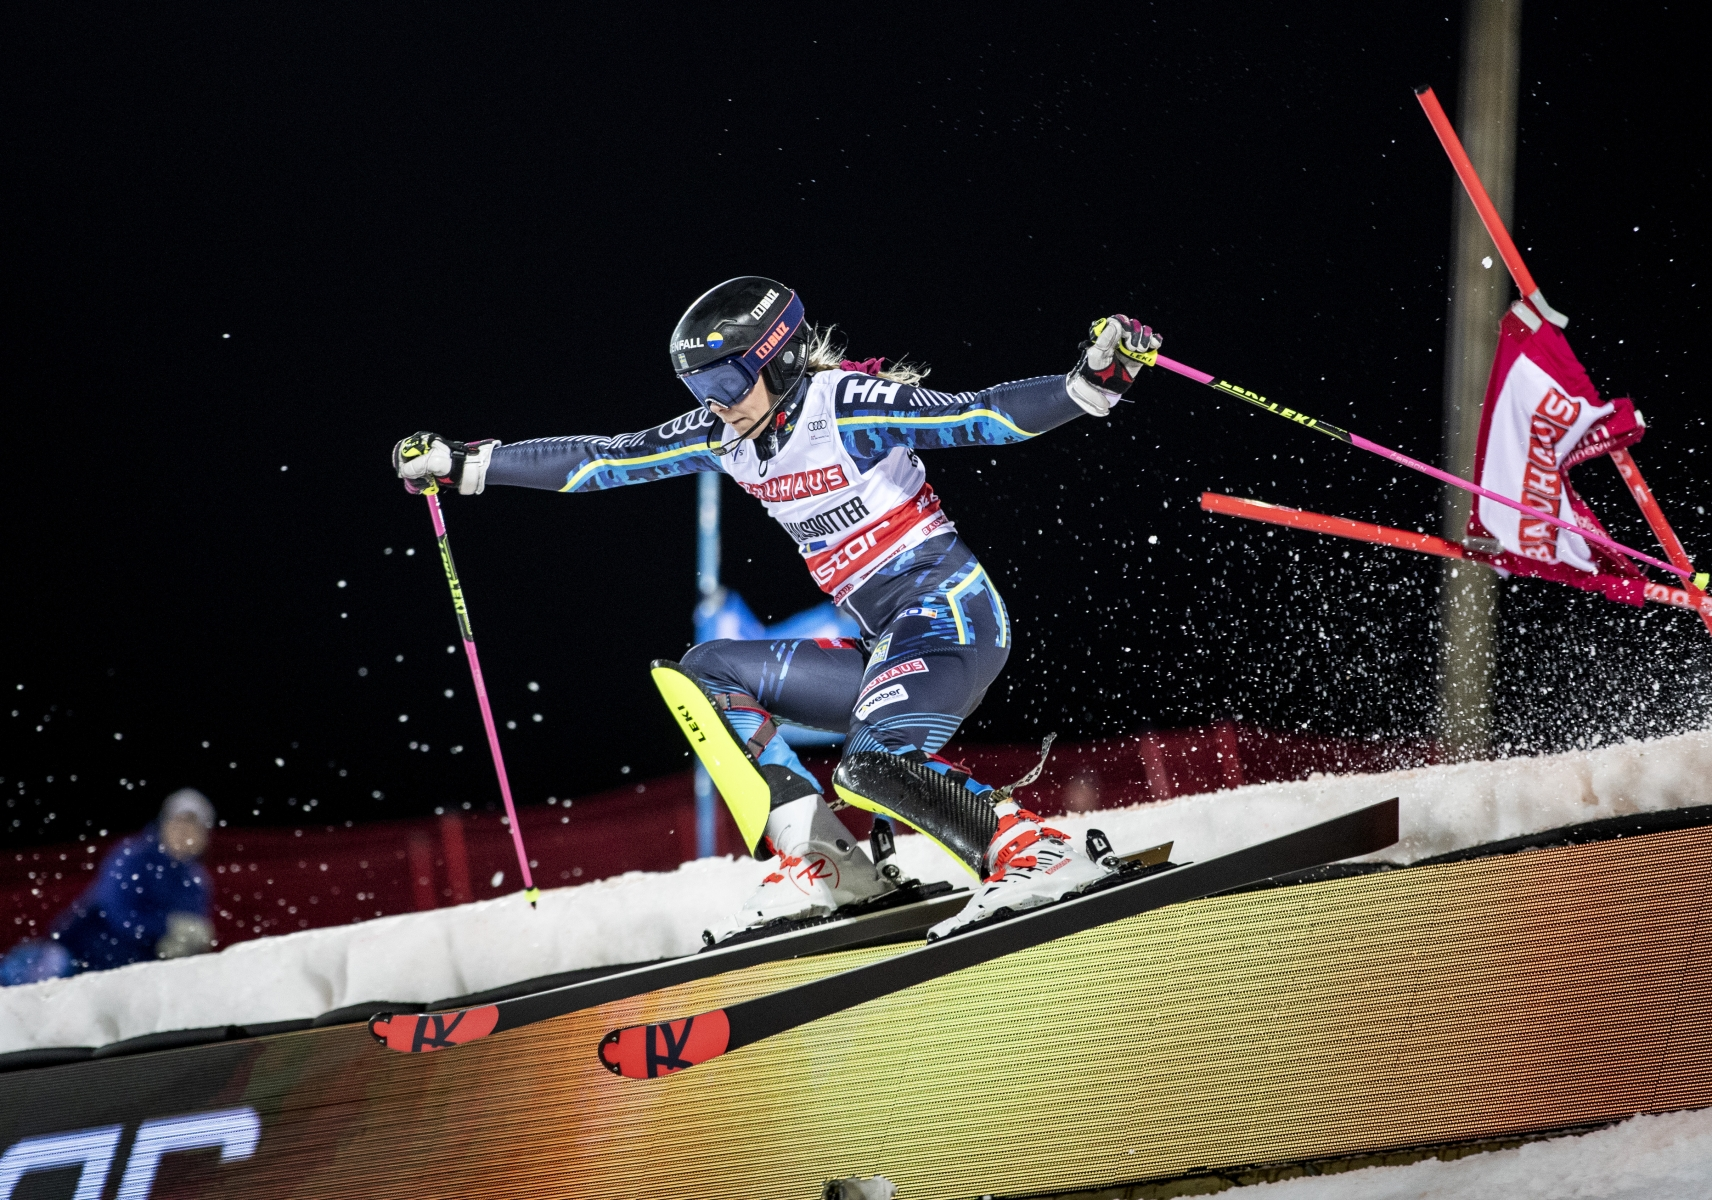 Frida Hansdotter in the world Cup in parallel slalom in Stockholm 2019